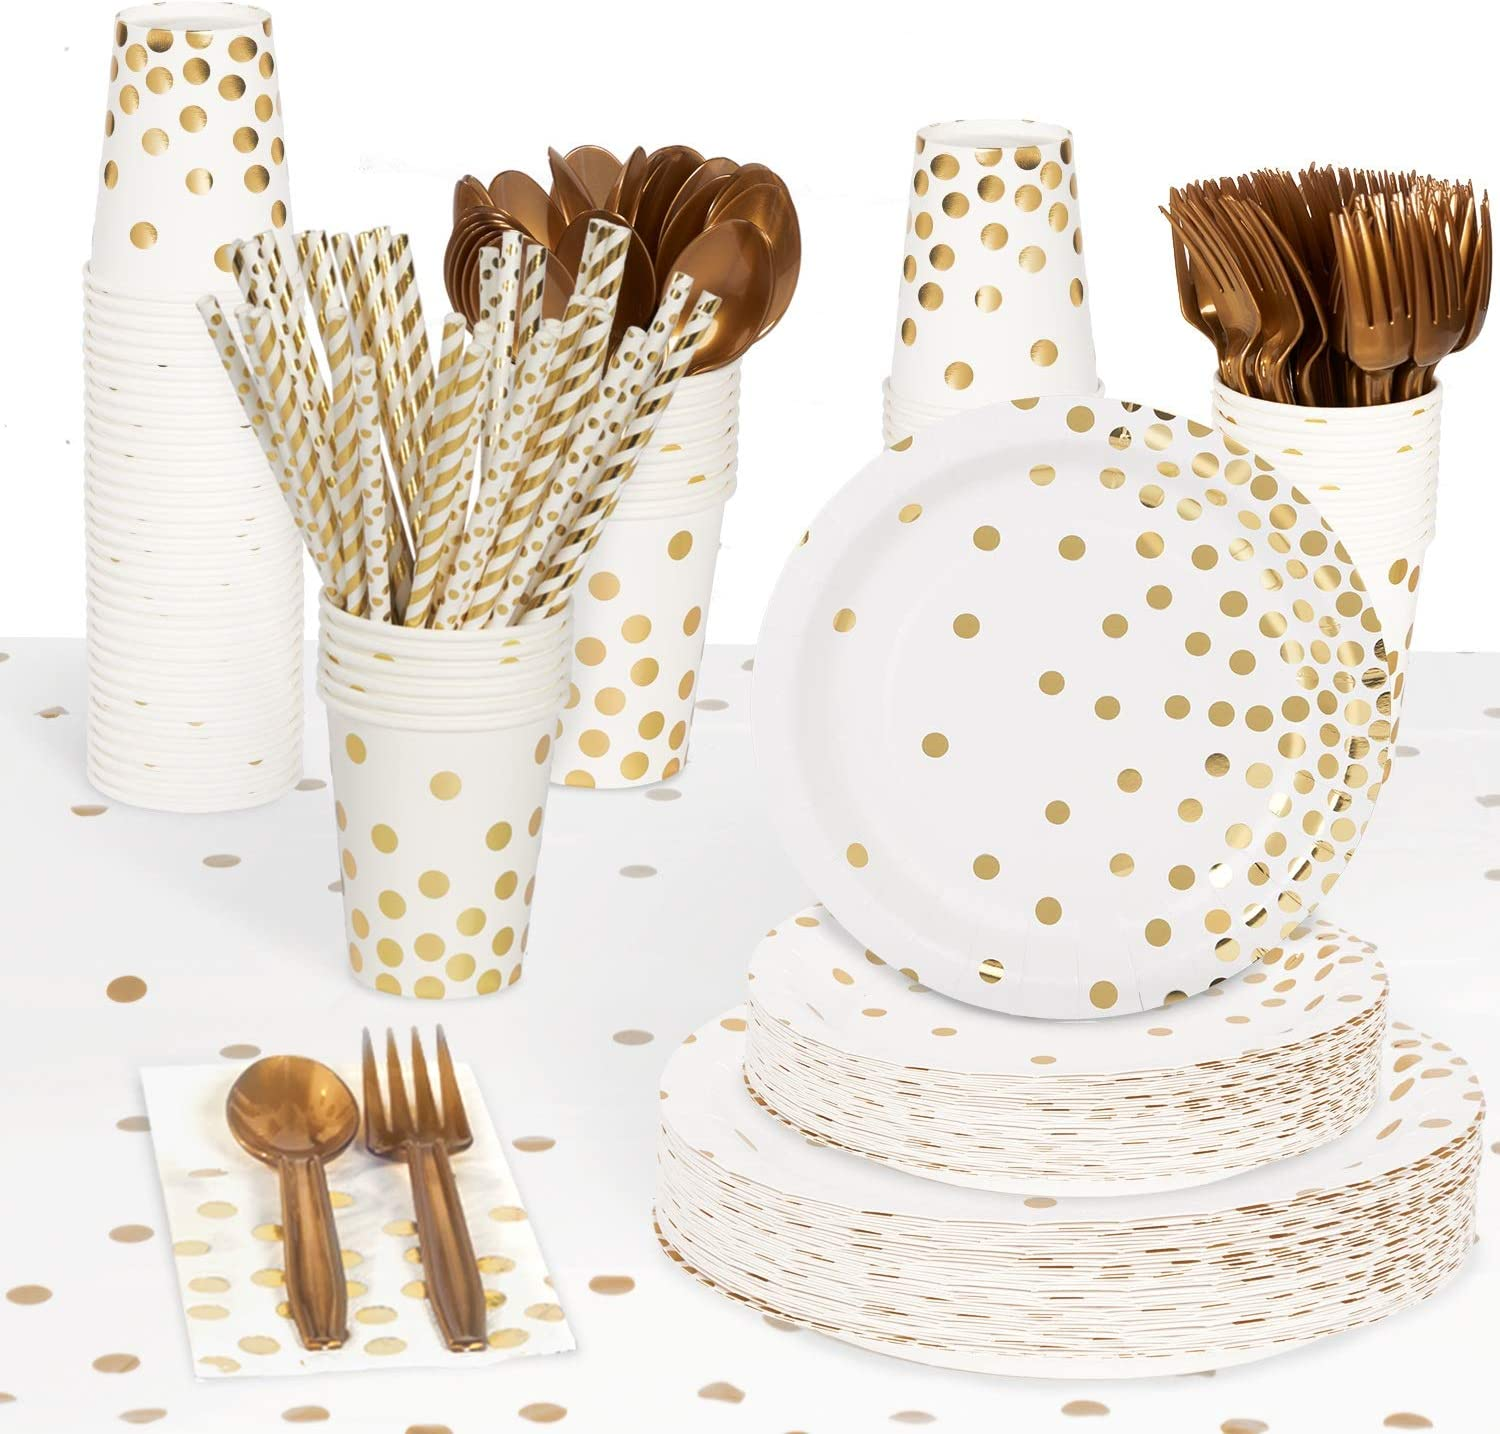 Decorlife Gold Paper Plates for 50, White and Gold Party Supplies for Bachelorette, Baby Shower, Birthday, Including 4 Pack Tablecloths, Gold Plates, Cups, Napkins, Cutlery, Straws